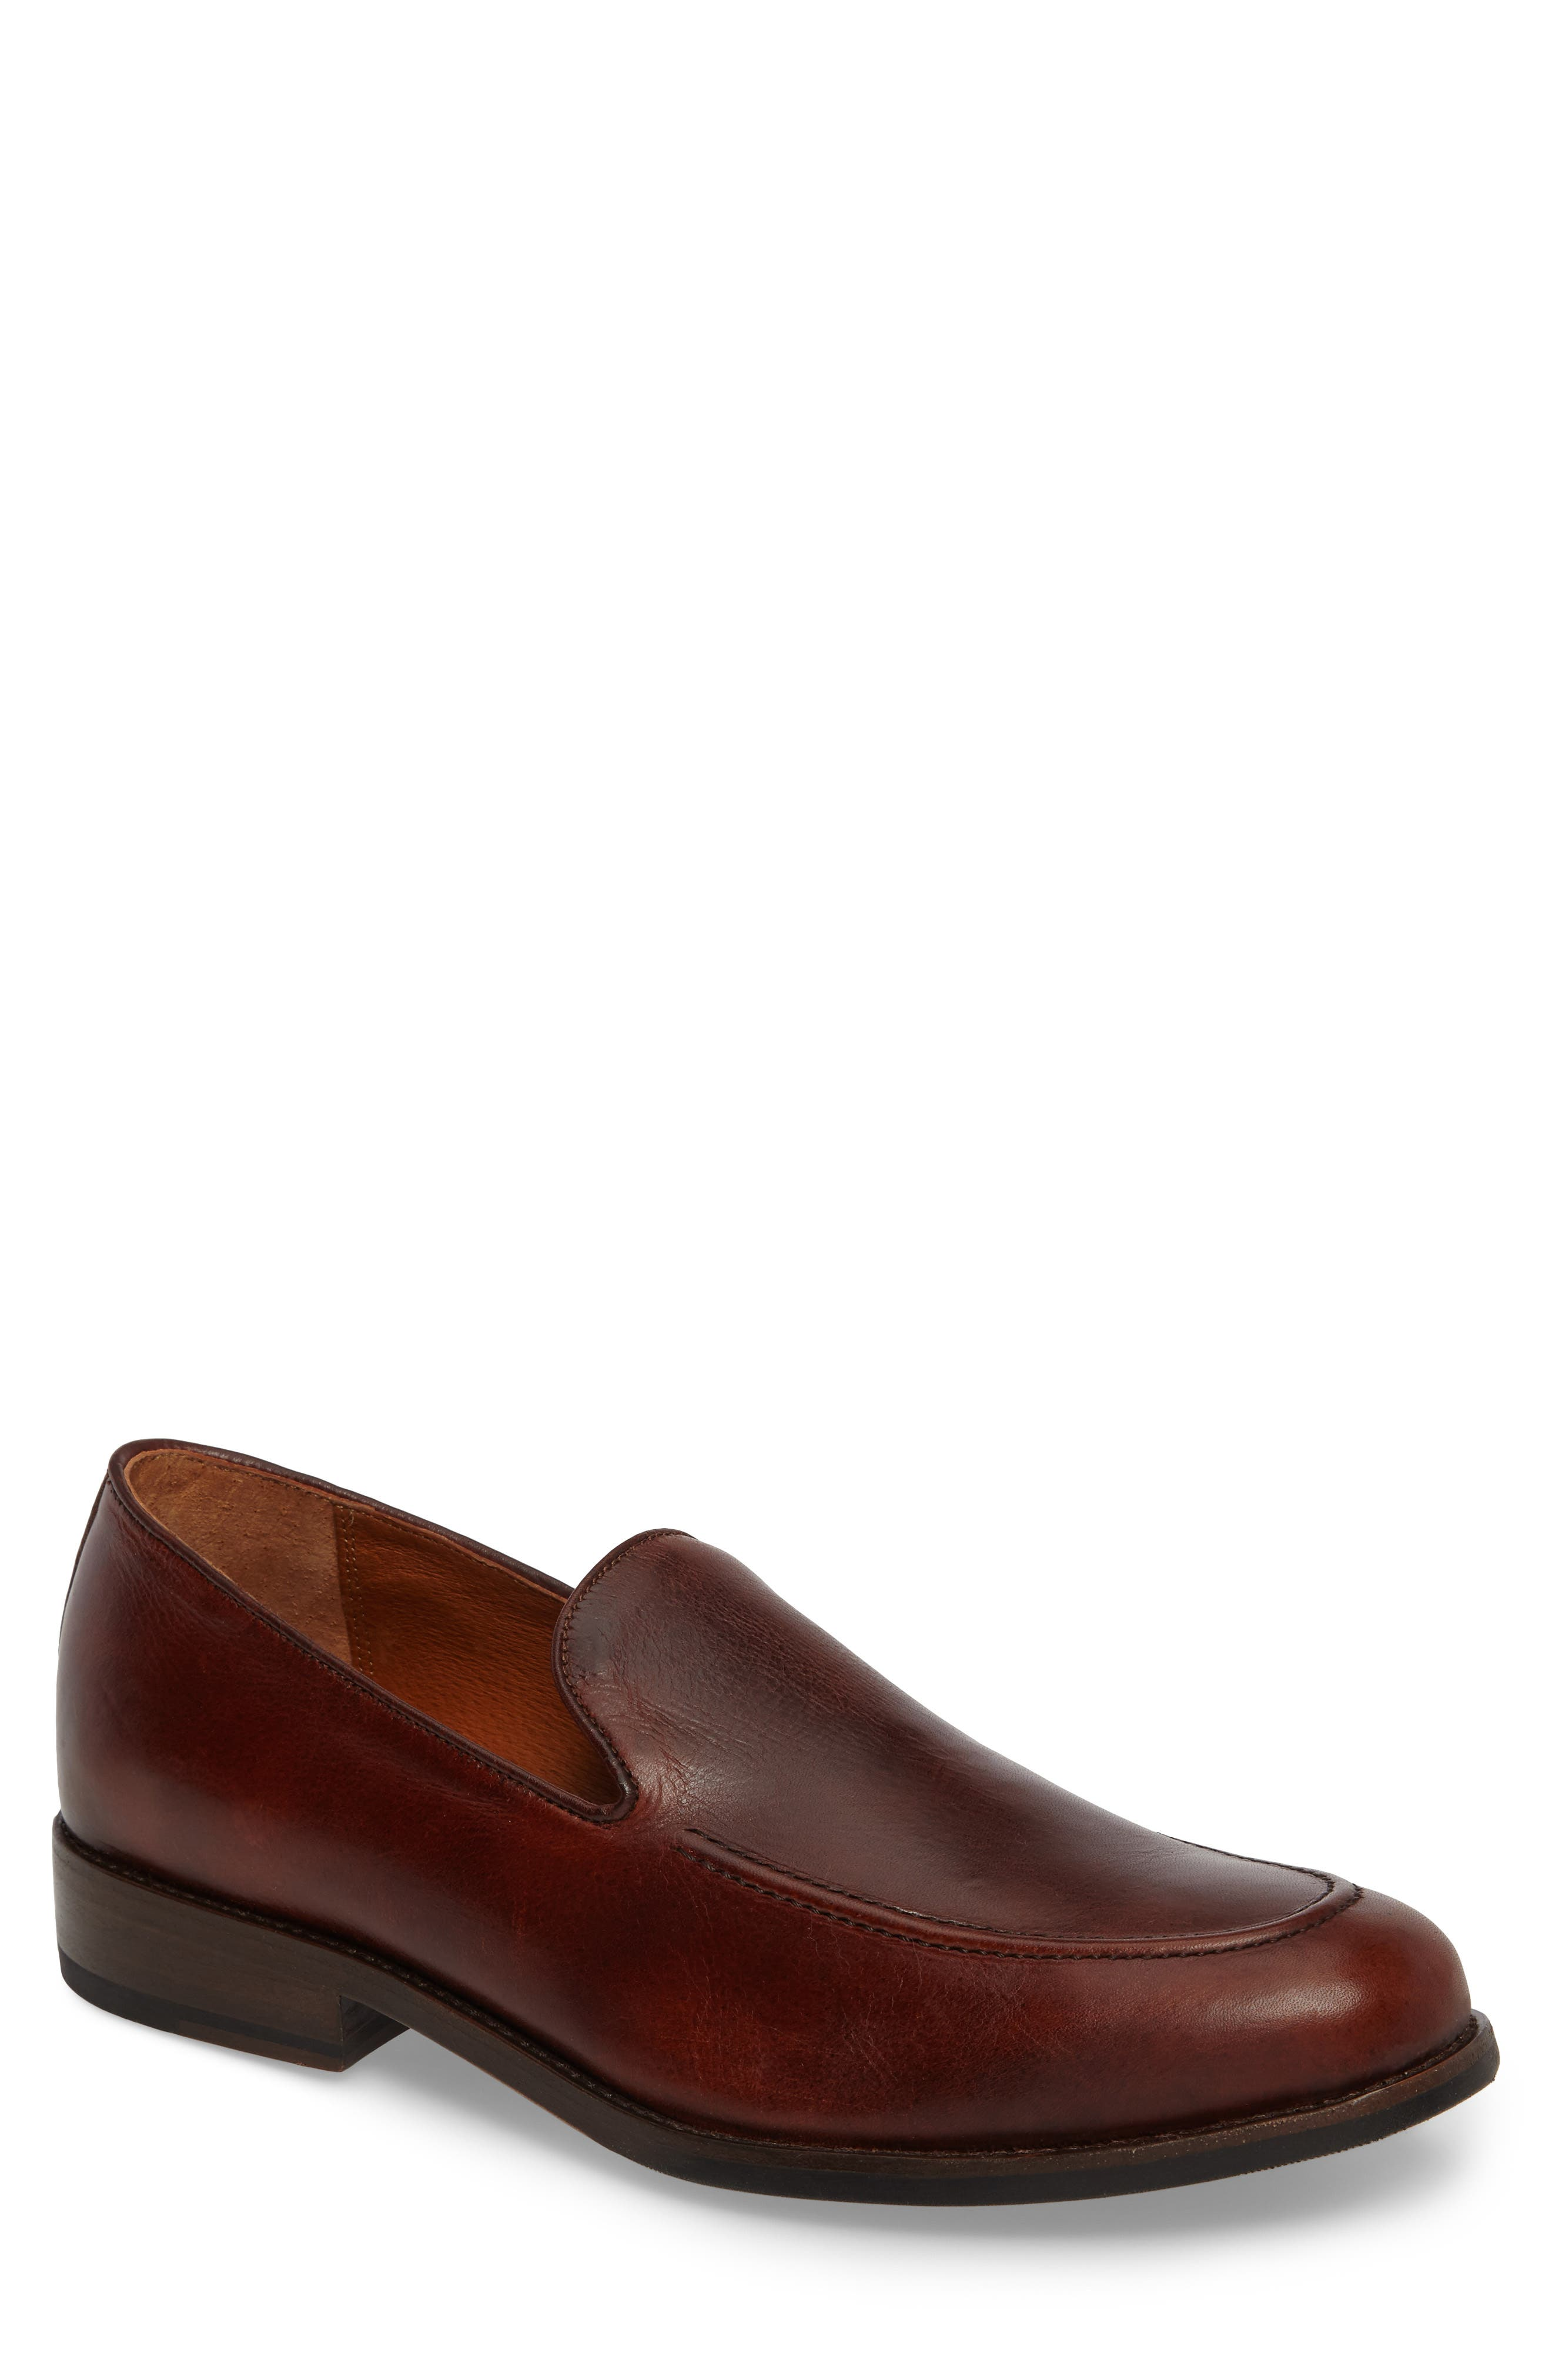 Jefferson Venetian Loafer,                             Main thumbnail 1, color,                             BROWN